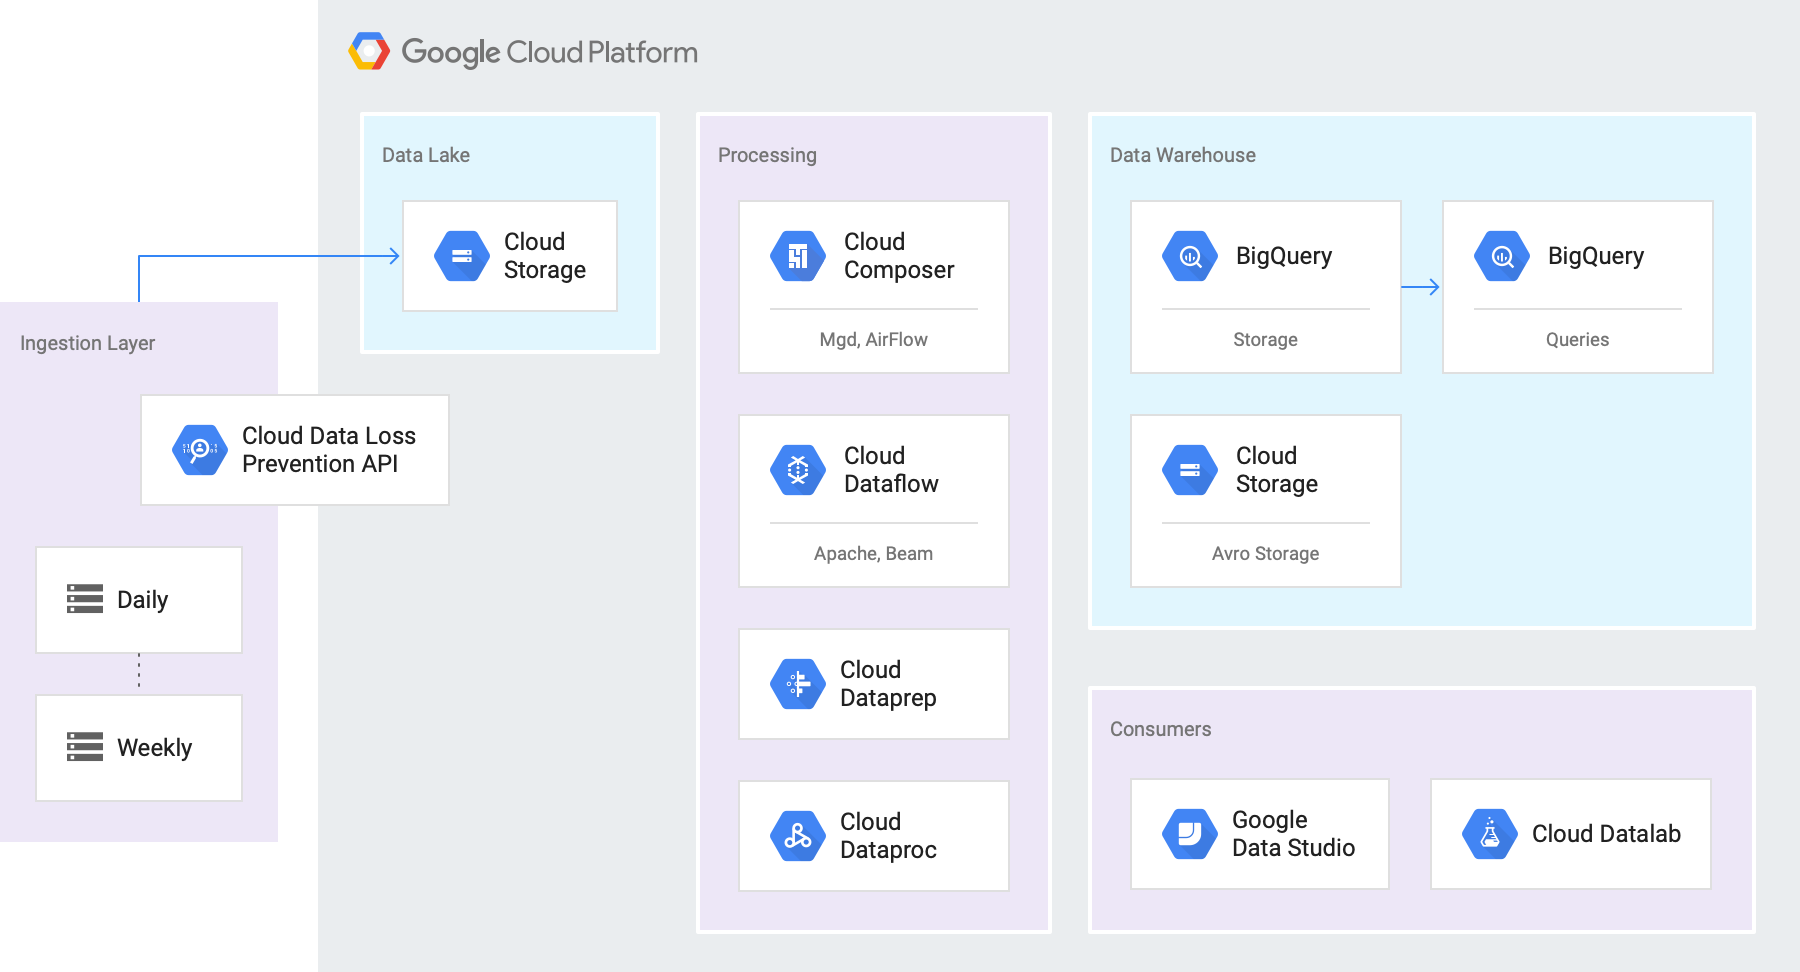 Architecture of data lake use cases